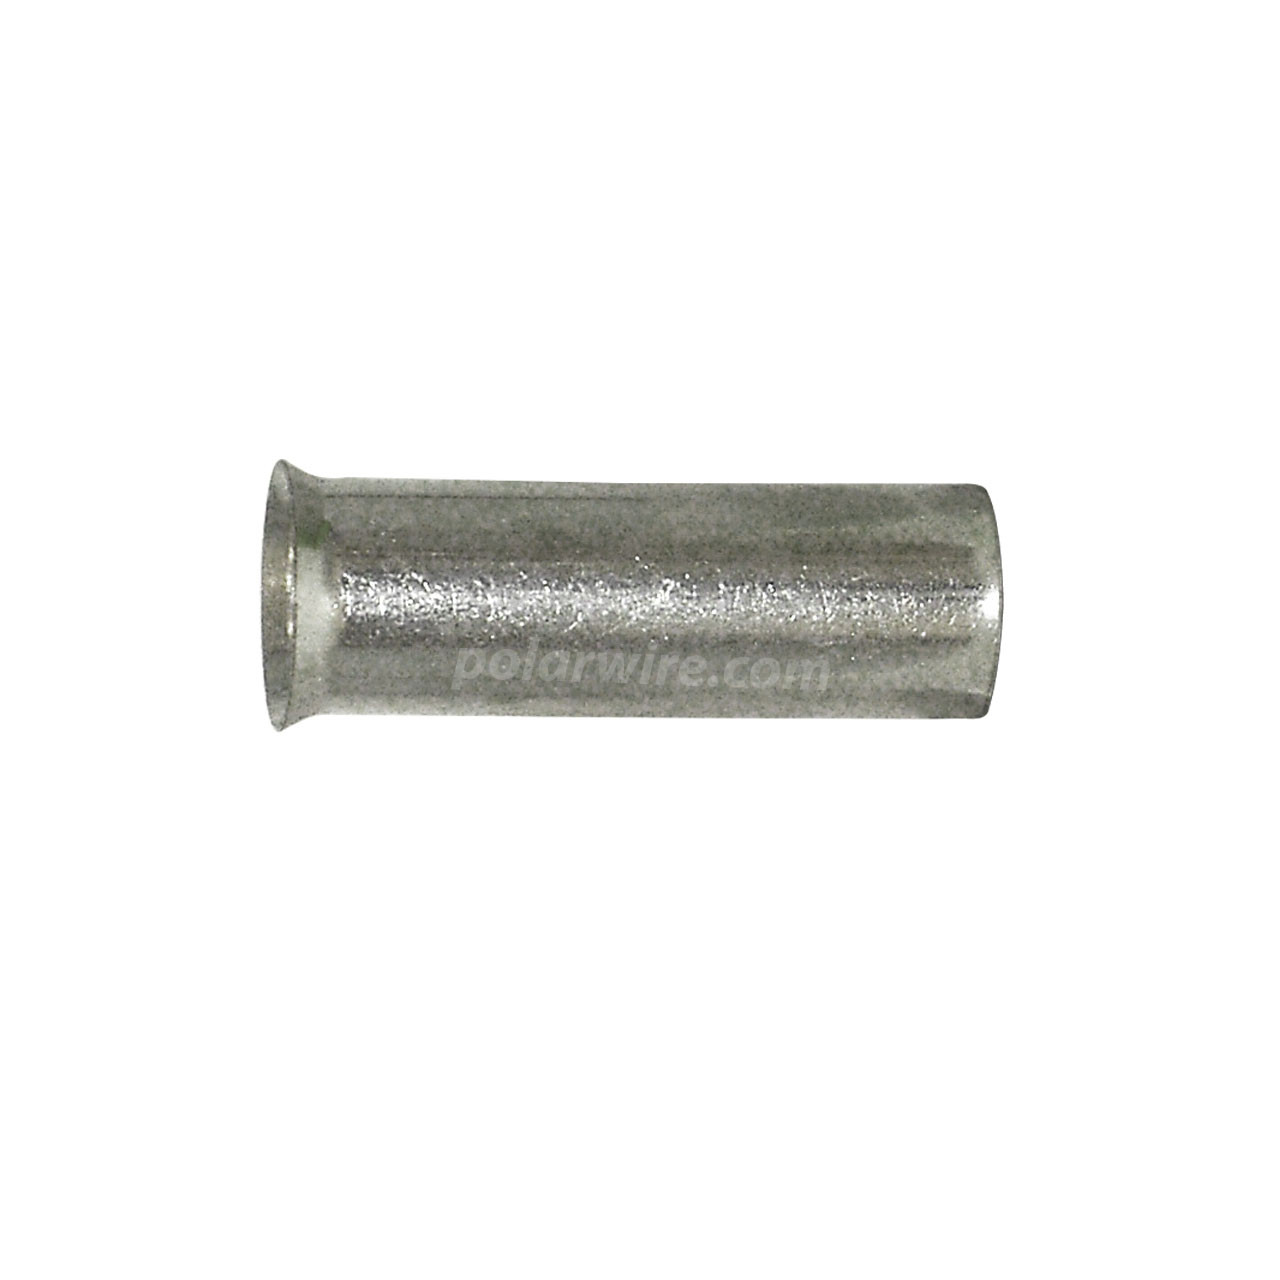 FERRULE 1-1/0 UNINSULATED 1 AWG TO 1/0AWG